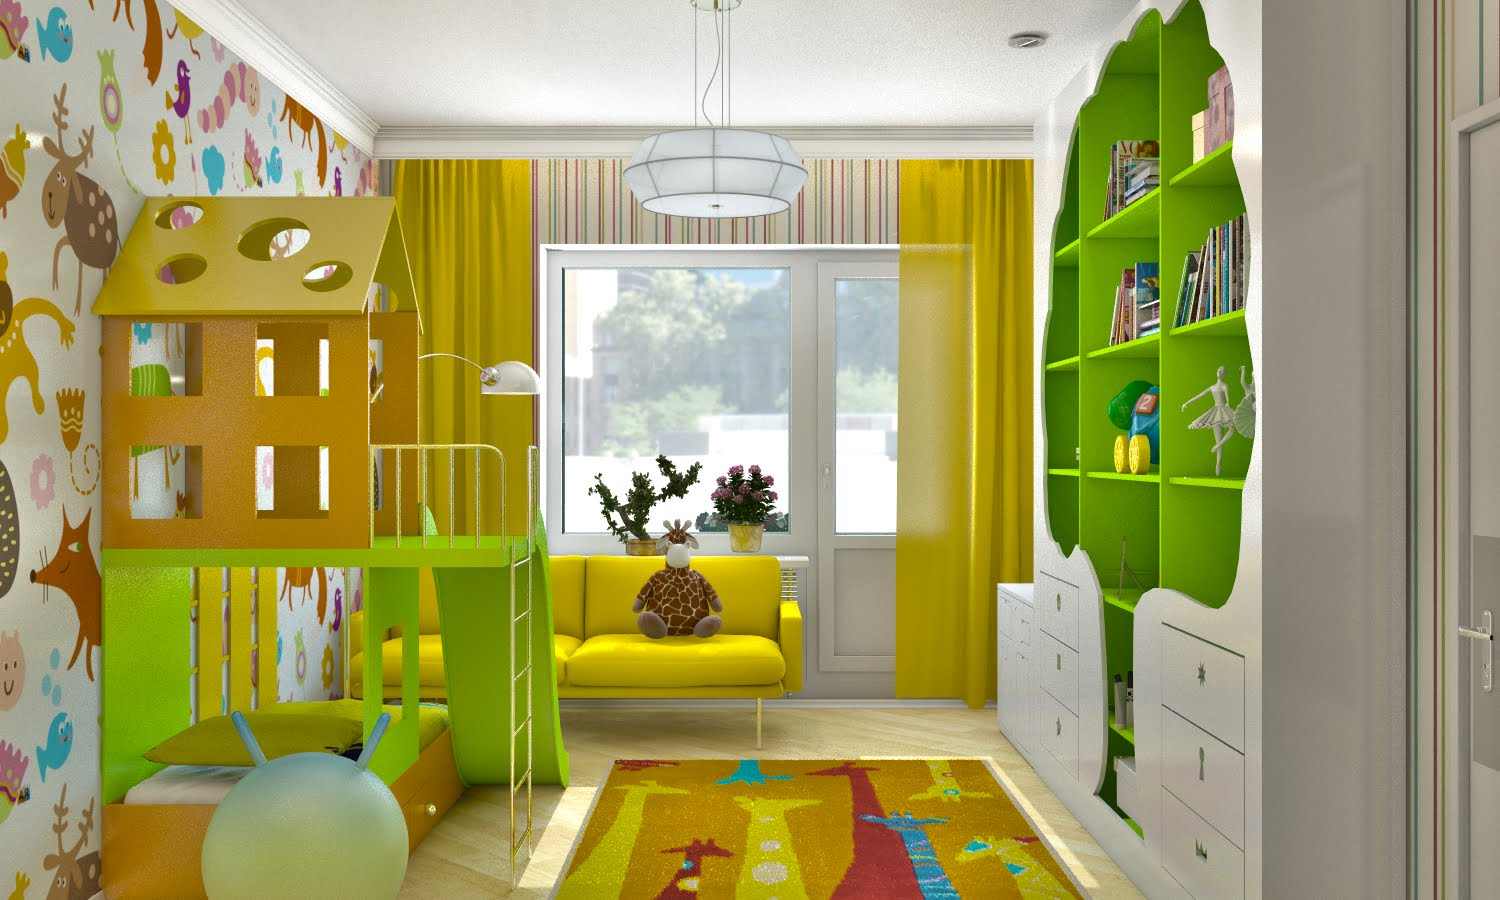 Kids room design ideas kids room ideas homeid for Kids room layout ideas